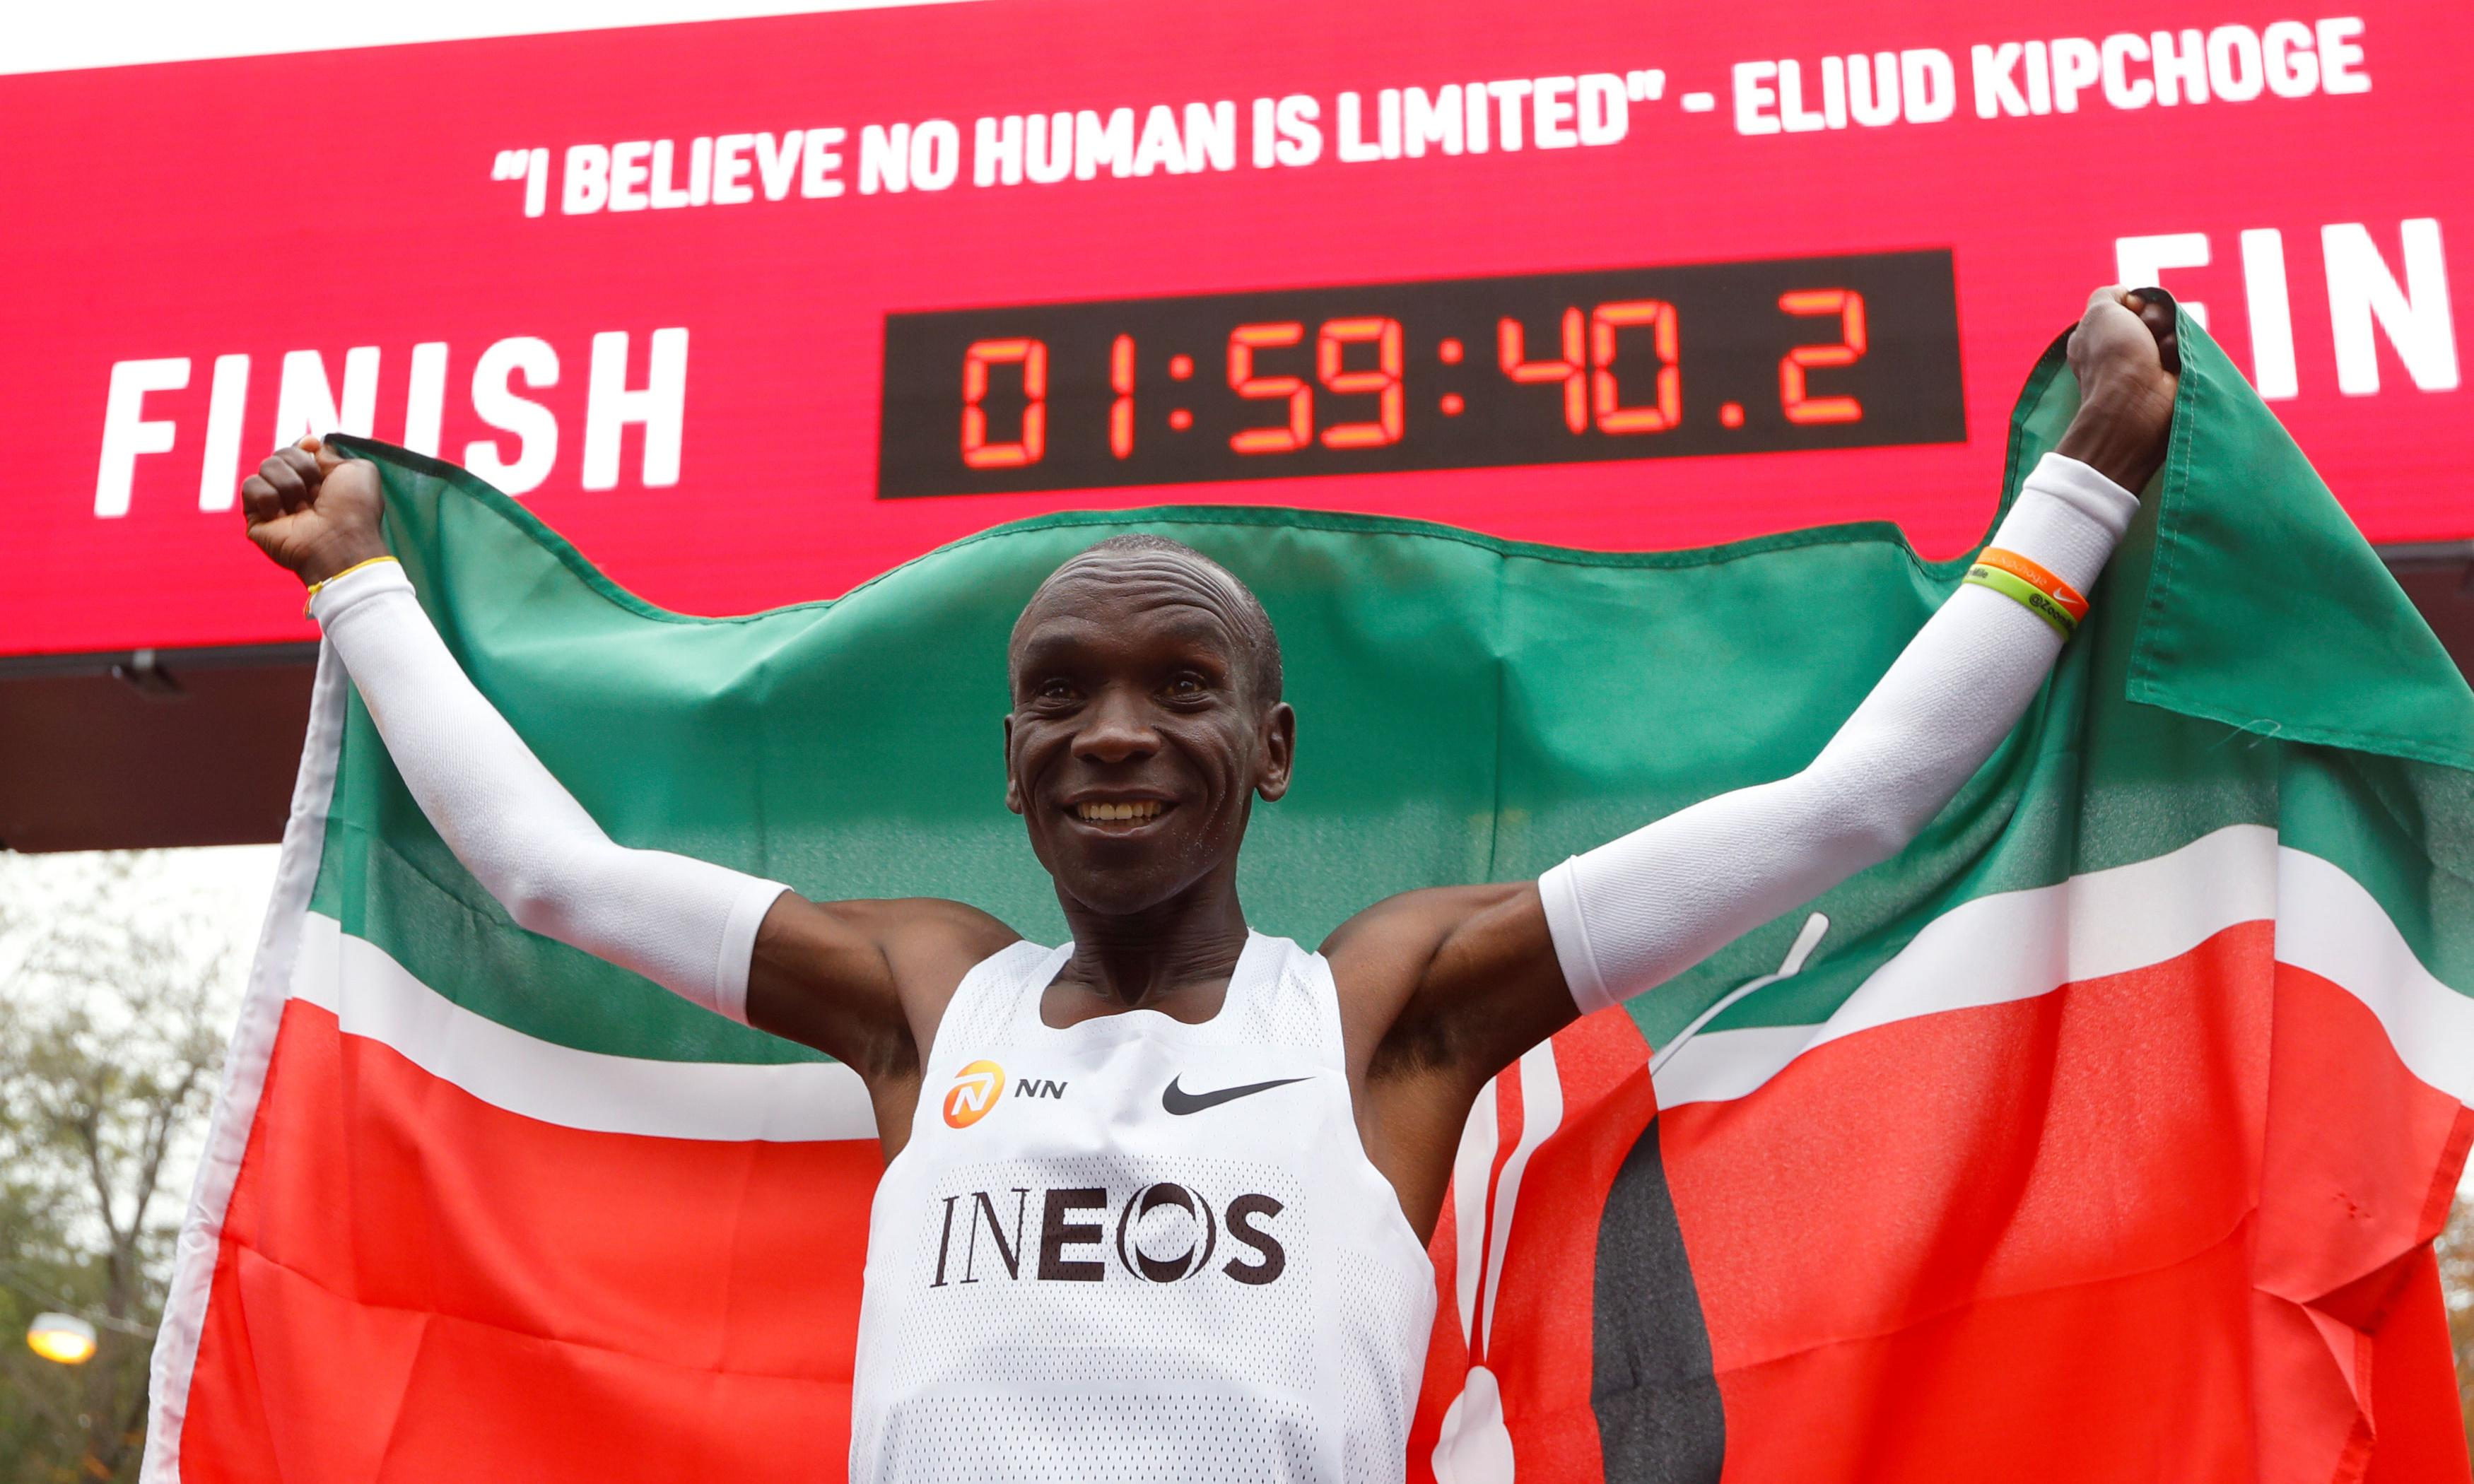 'We went for the moon': how Eliud Kipchoge made marathon history